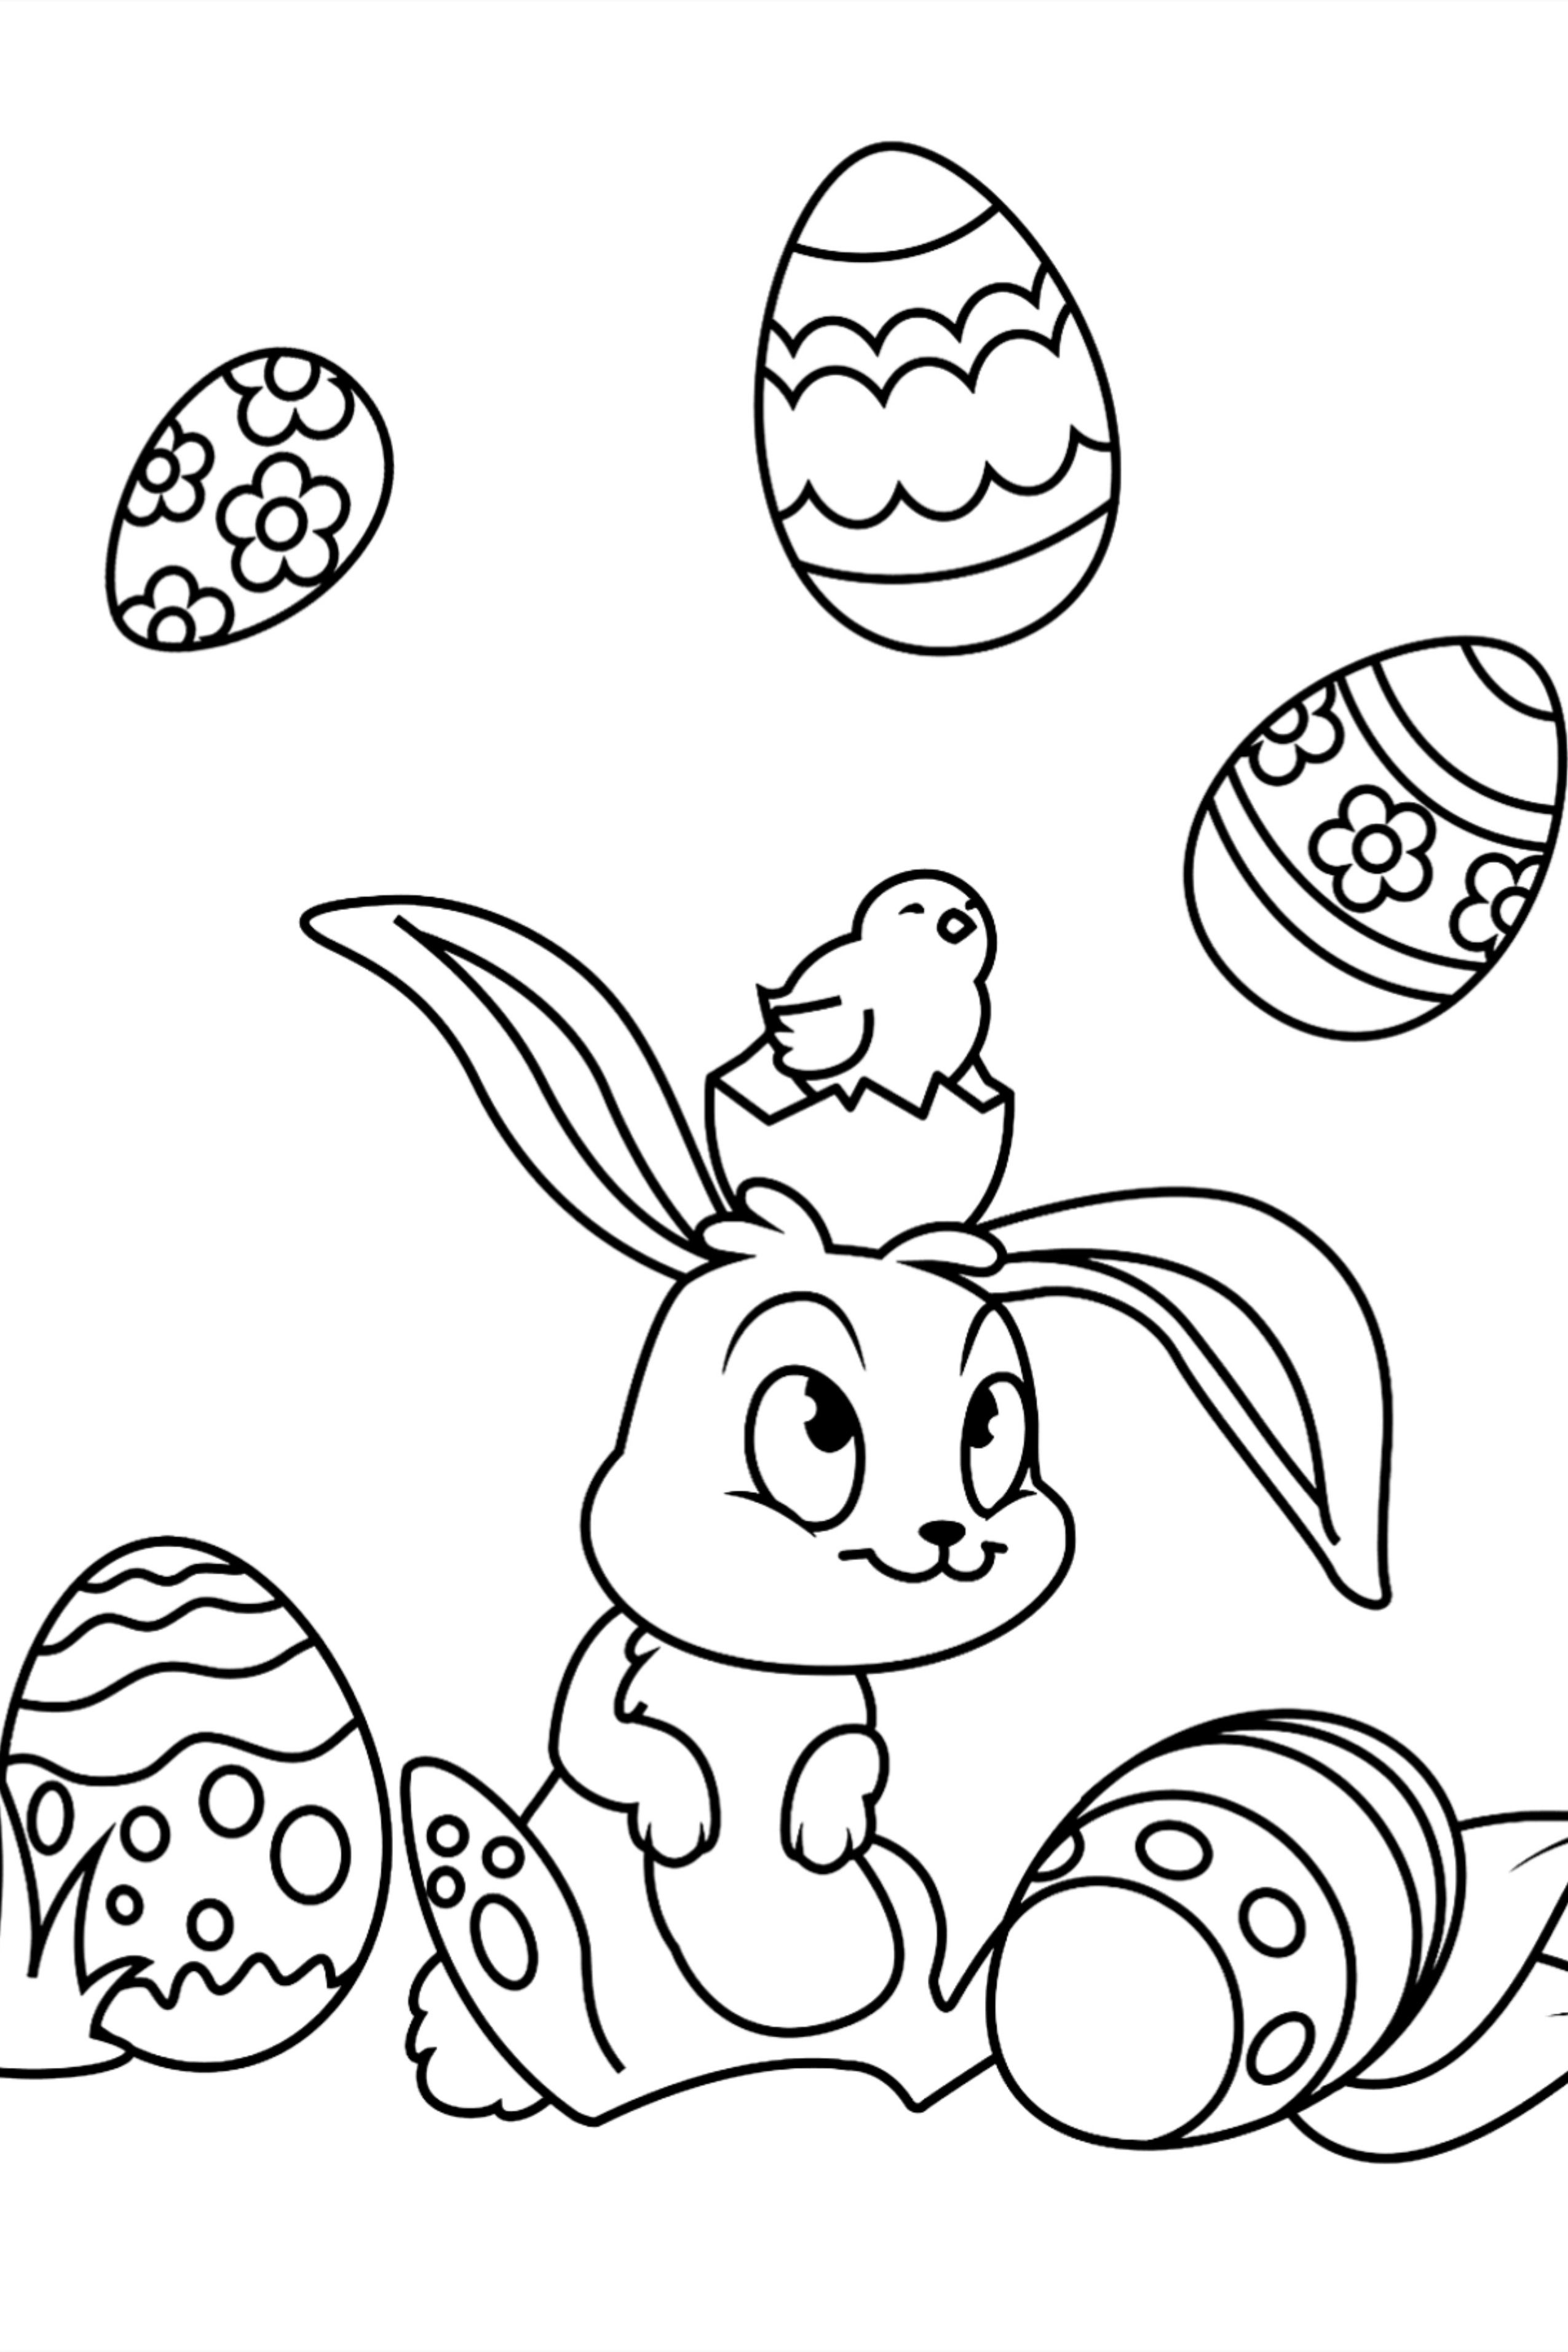 50 Easter Coloring Pages For Kids Easter Coloring Pages Easter Colouring Coloring Pages For Kids